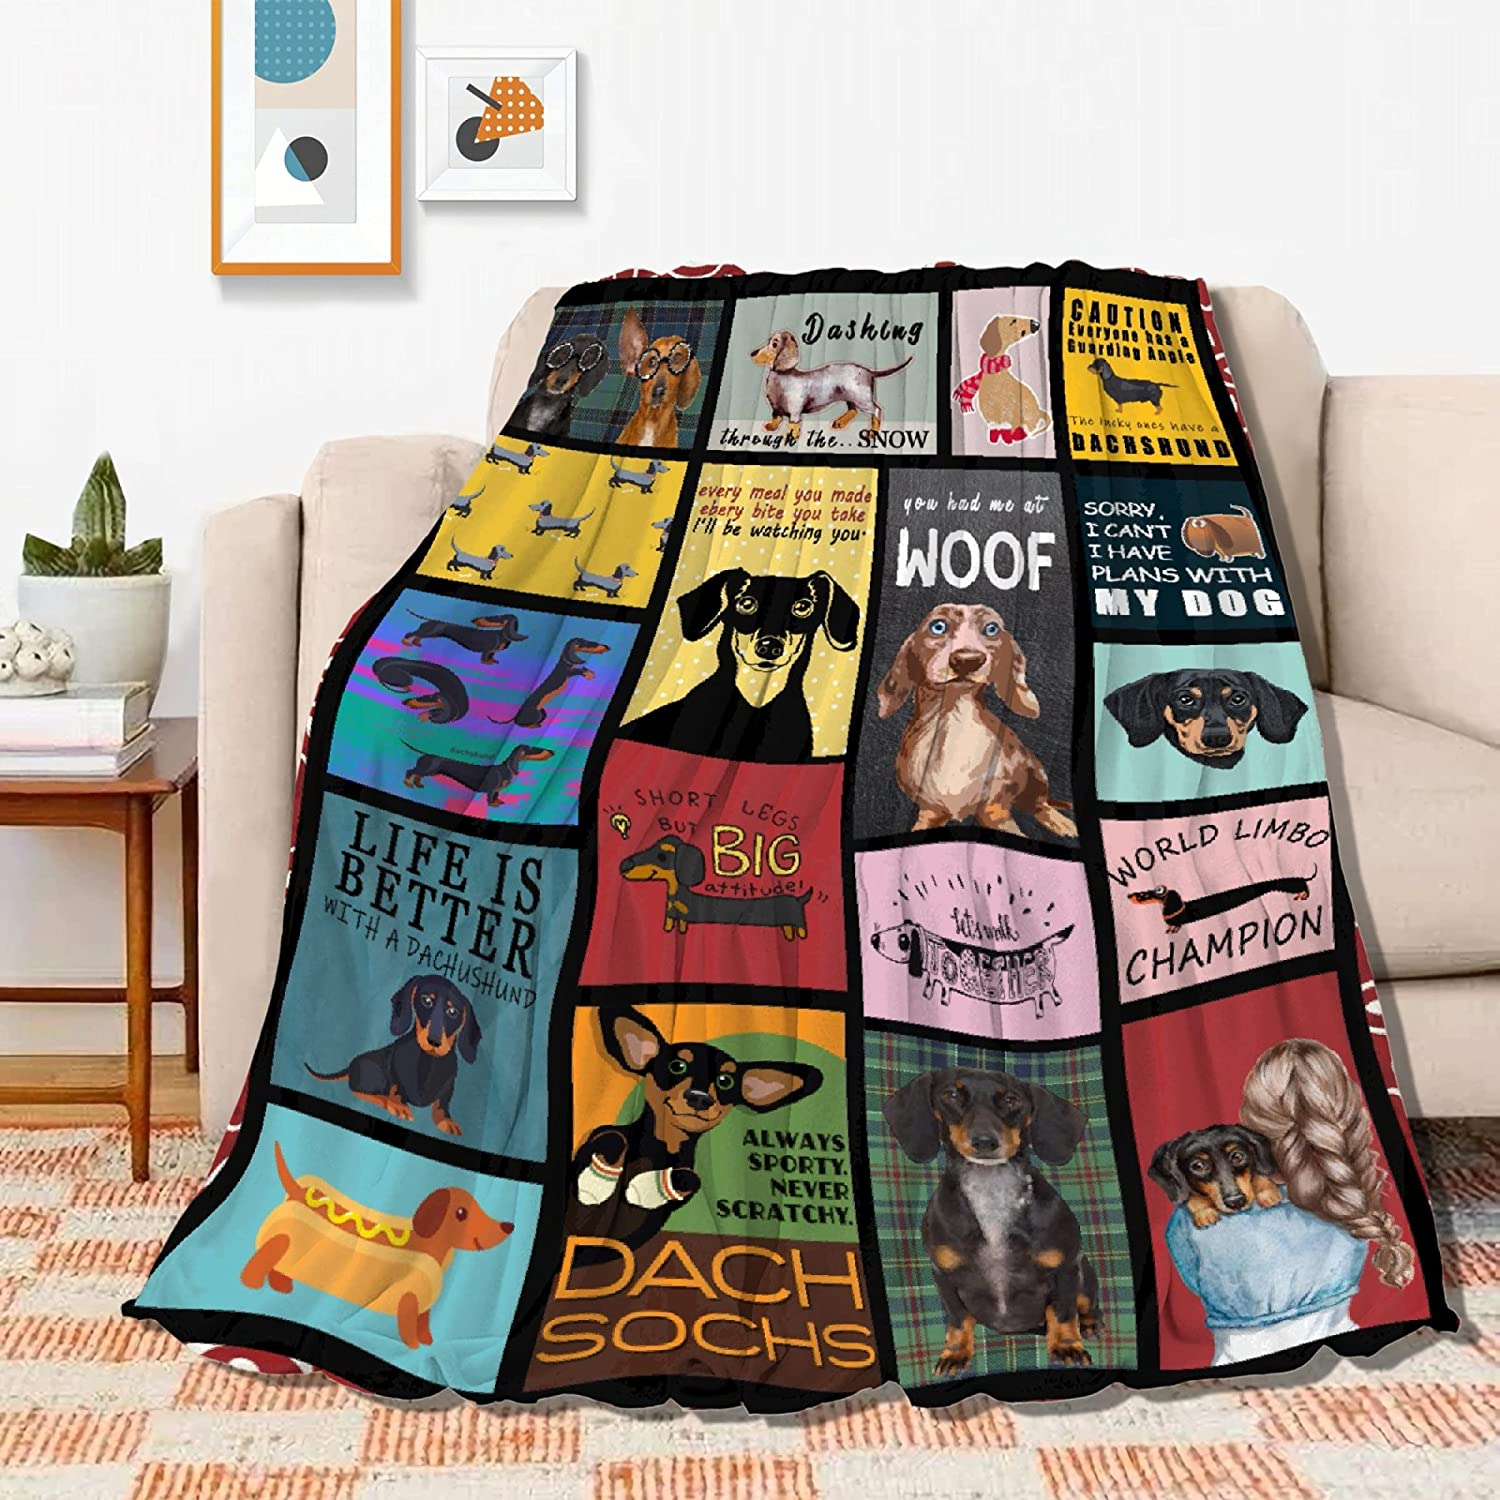 Dachshund New popularity Dog 3D Printed Milwaukee Mall Blanket Throws and Flanne Blankets Soft